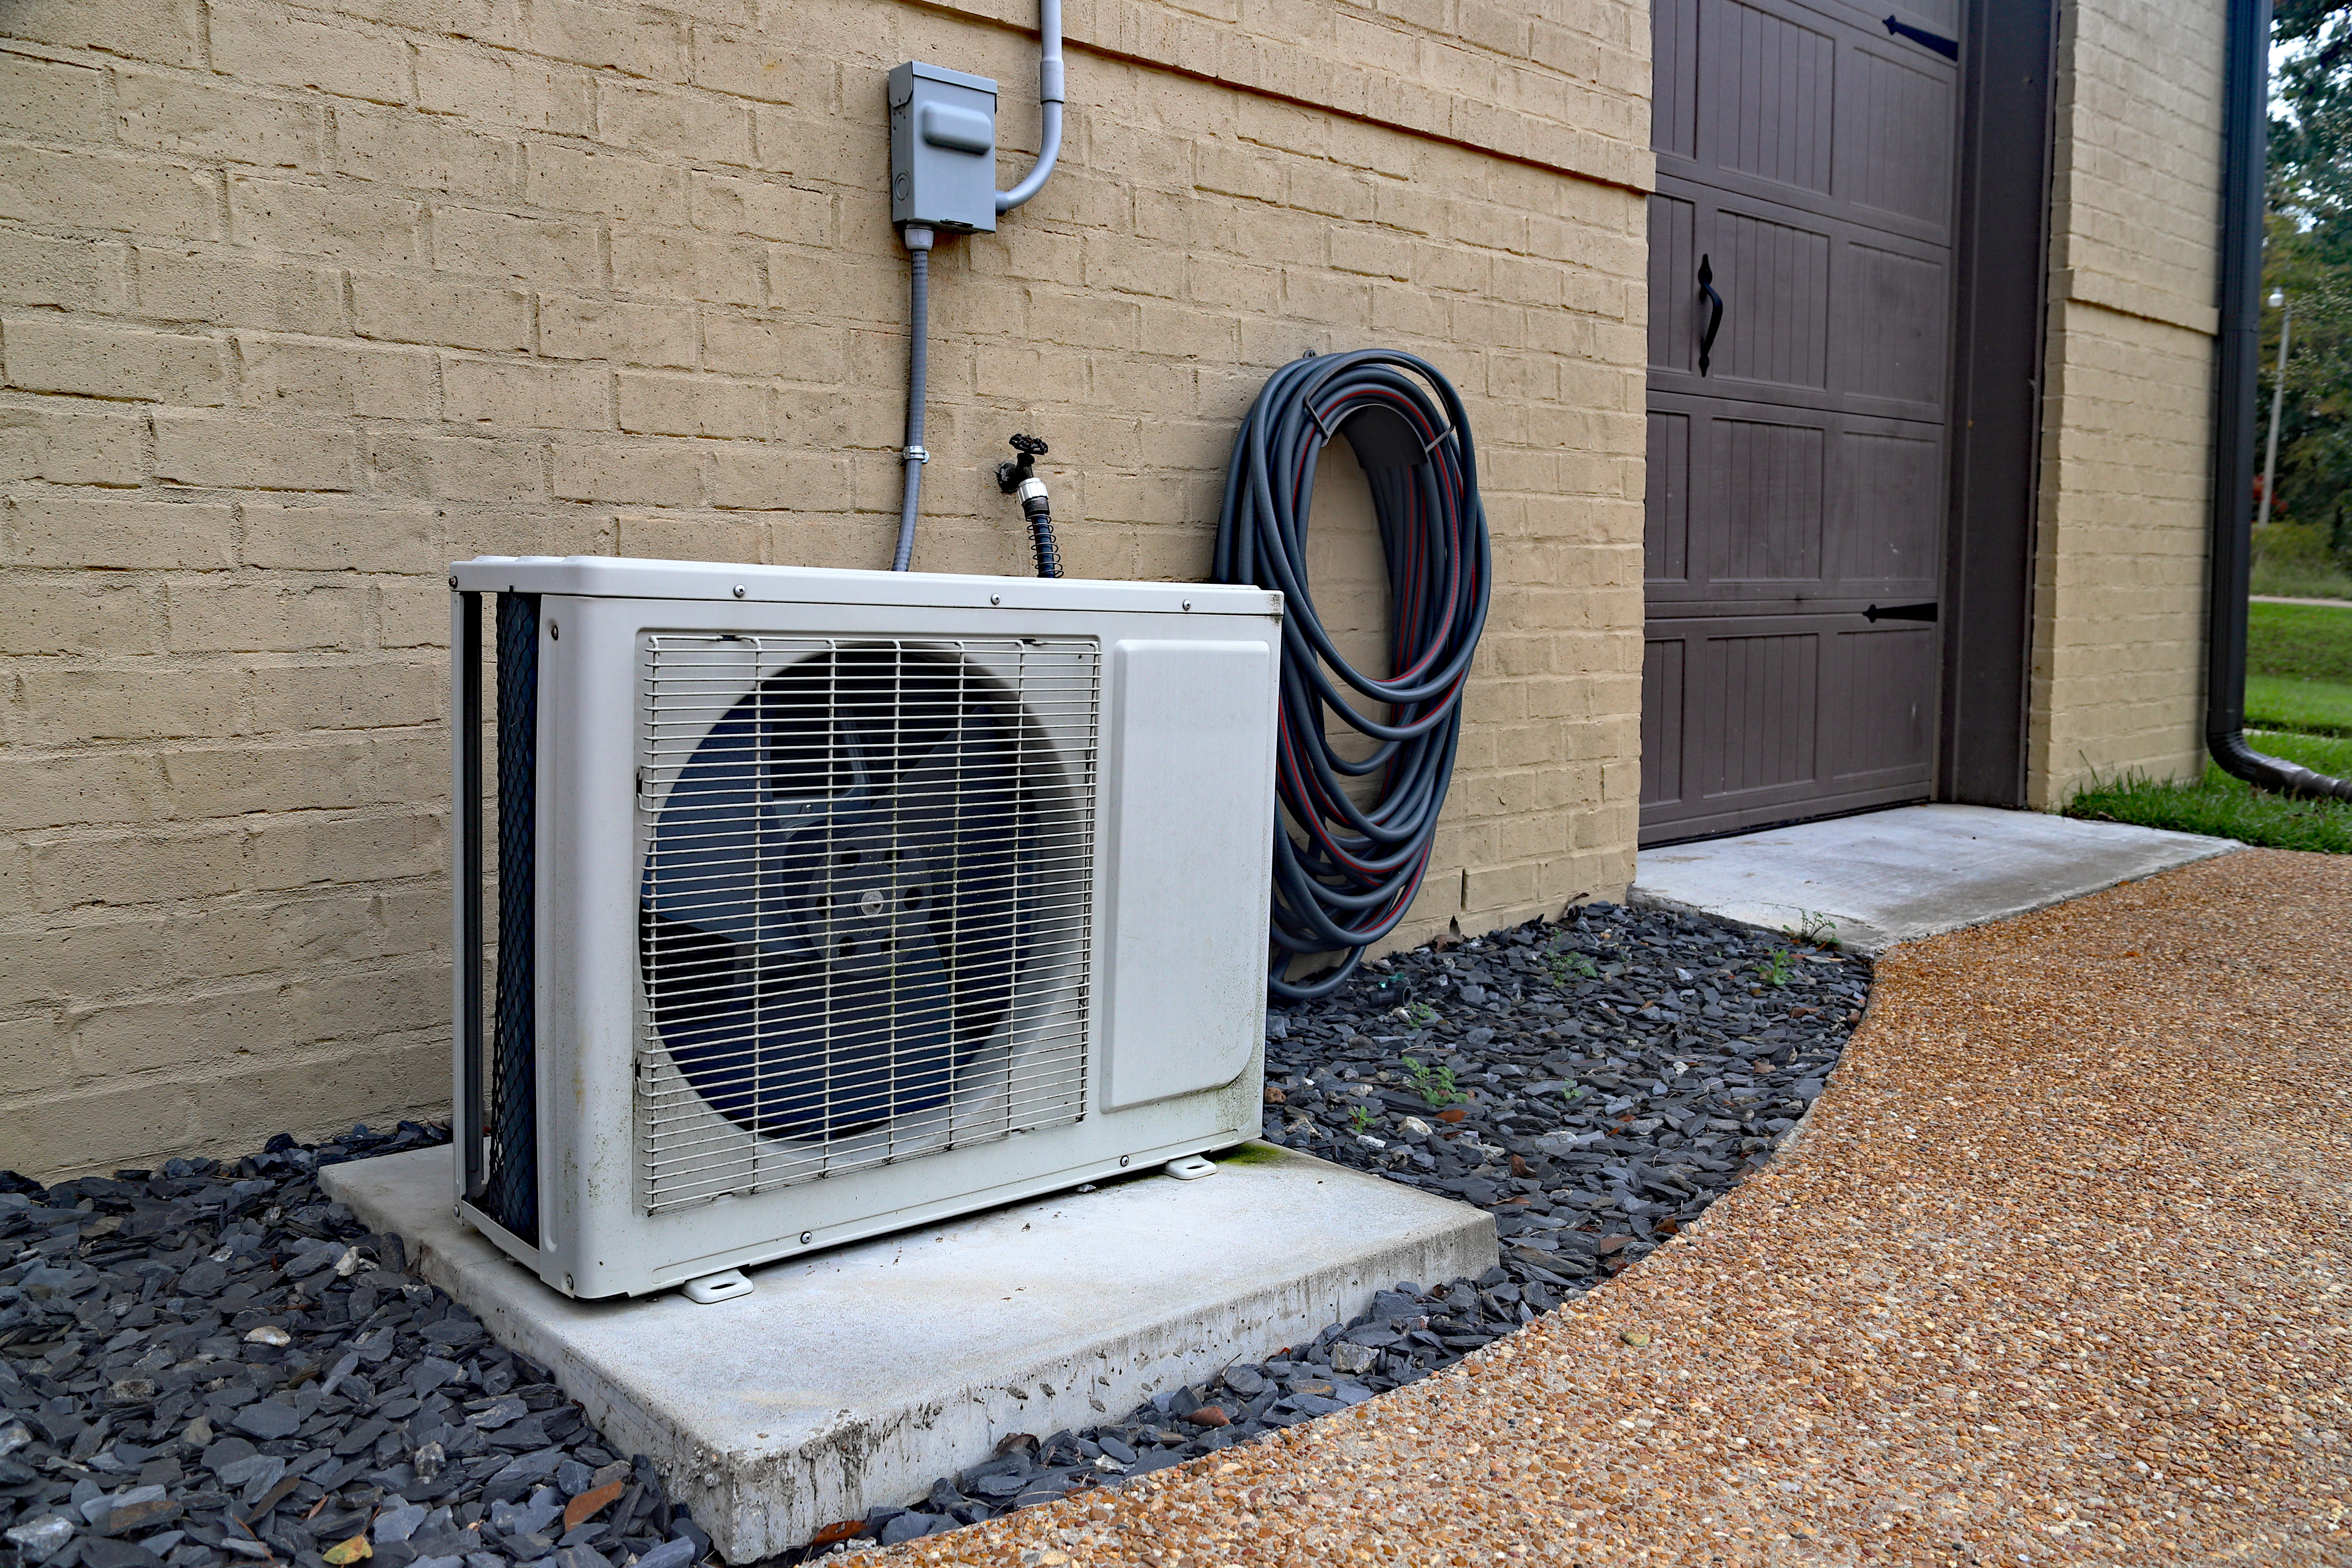 DIY HVAC Maintenance: Maintain Your Home HVAC System with These Tips